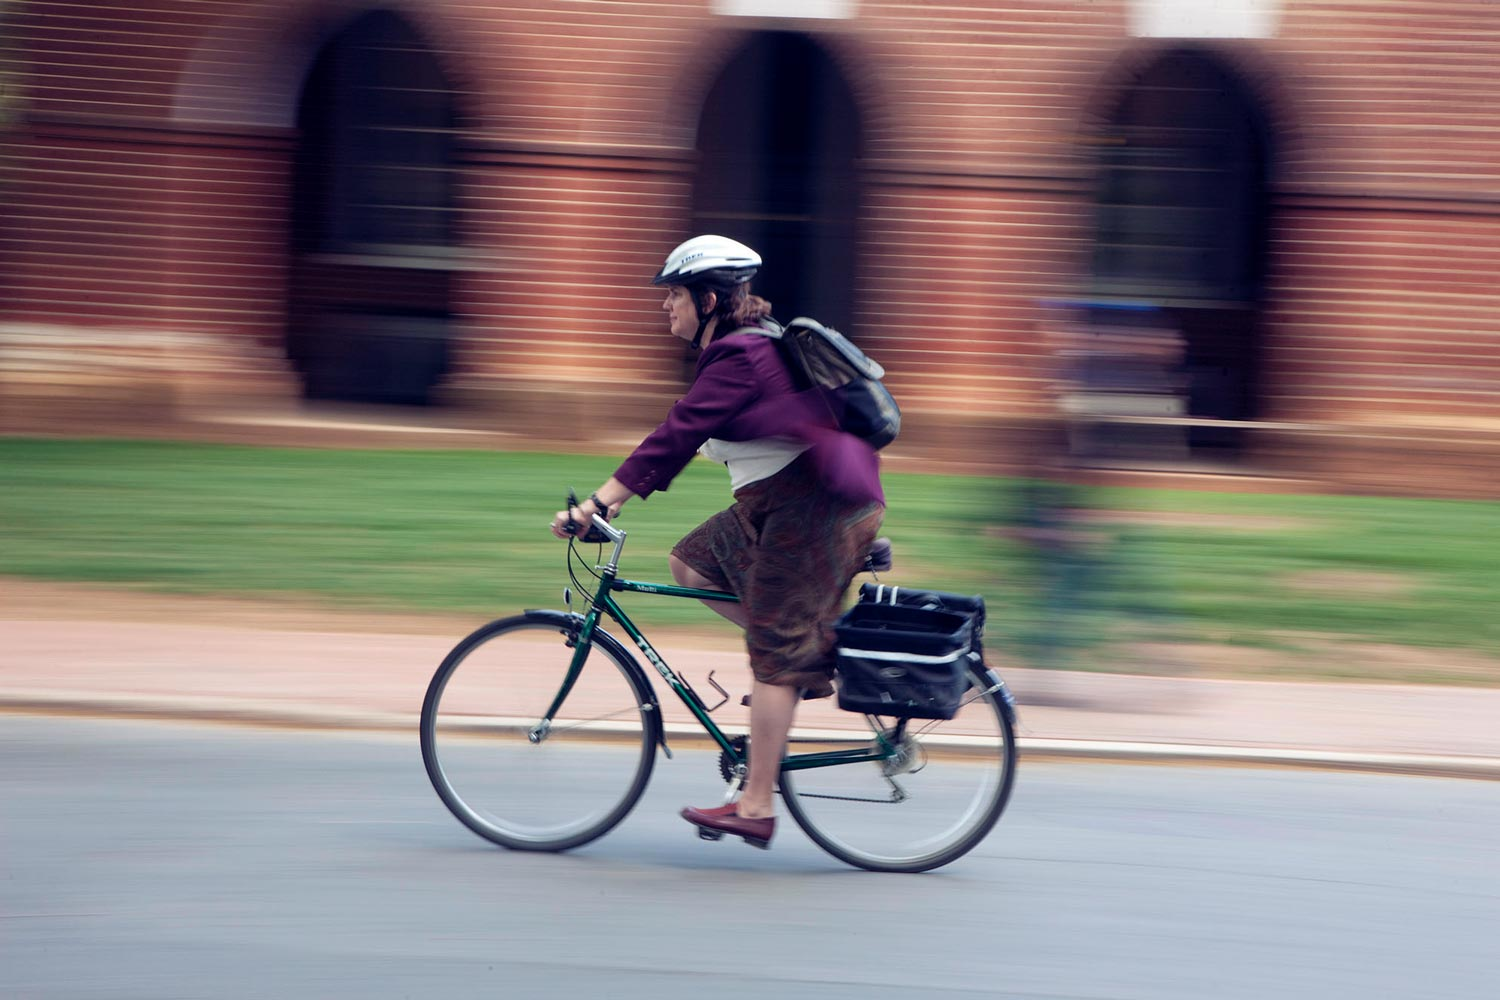 Bicycles are popular among faculty and students for moving around the University of Virginia.